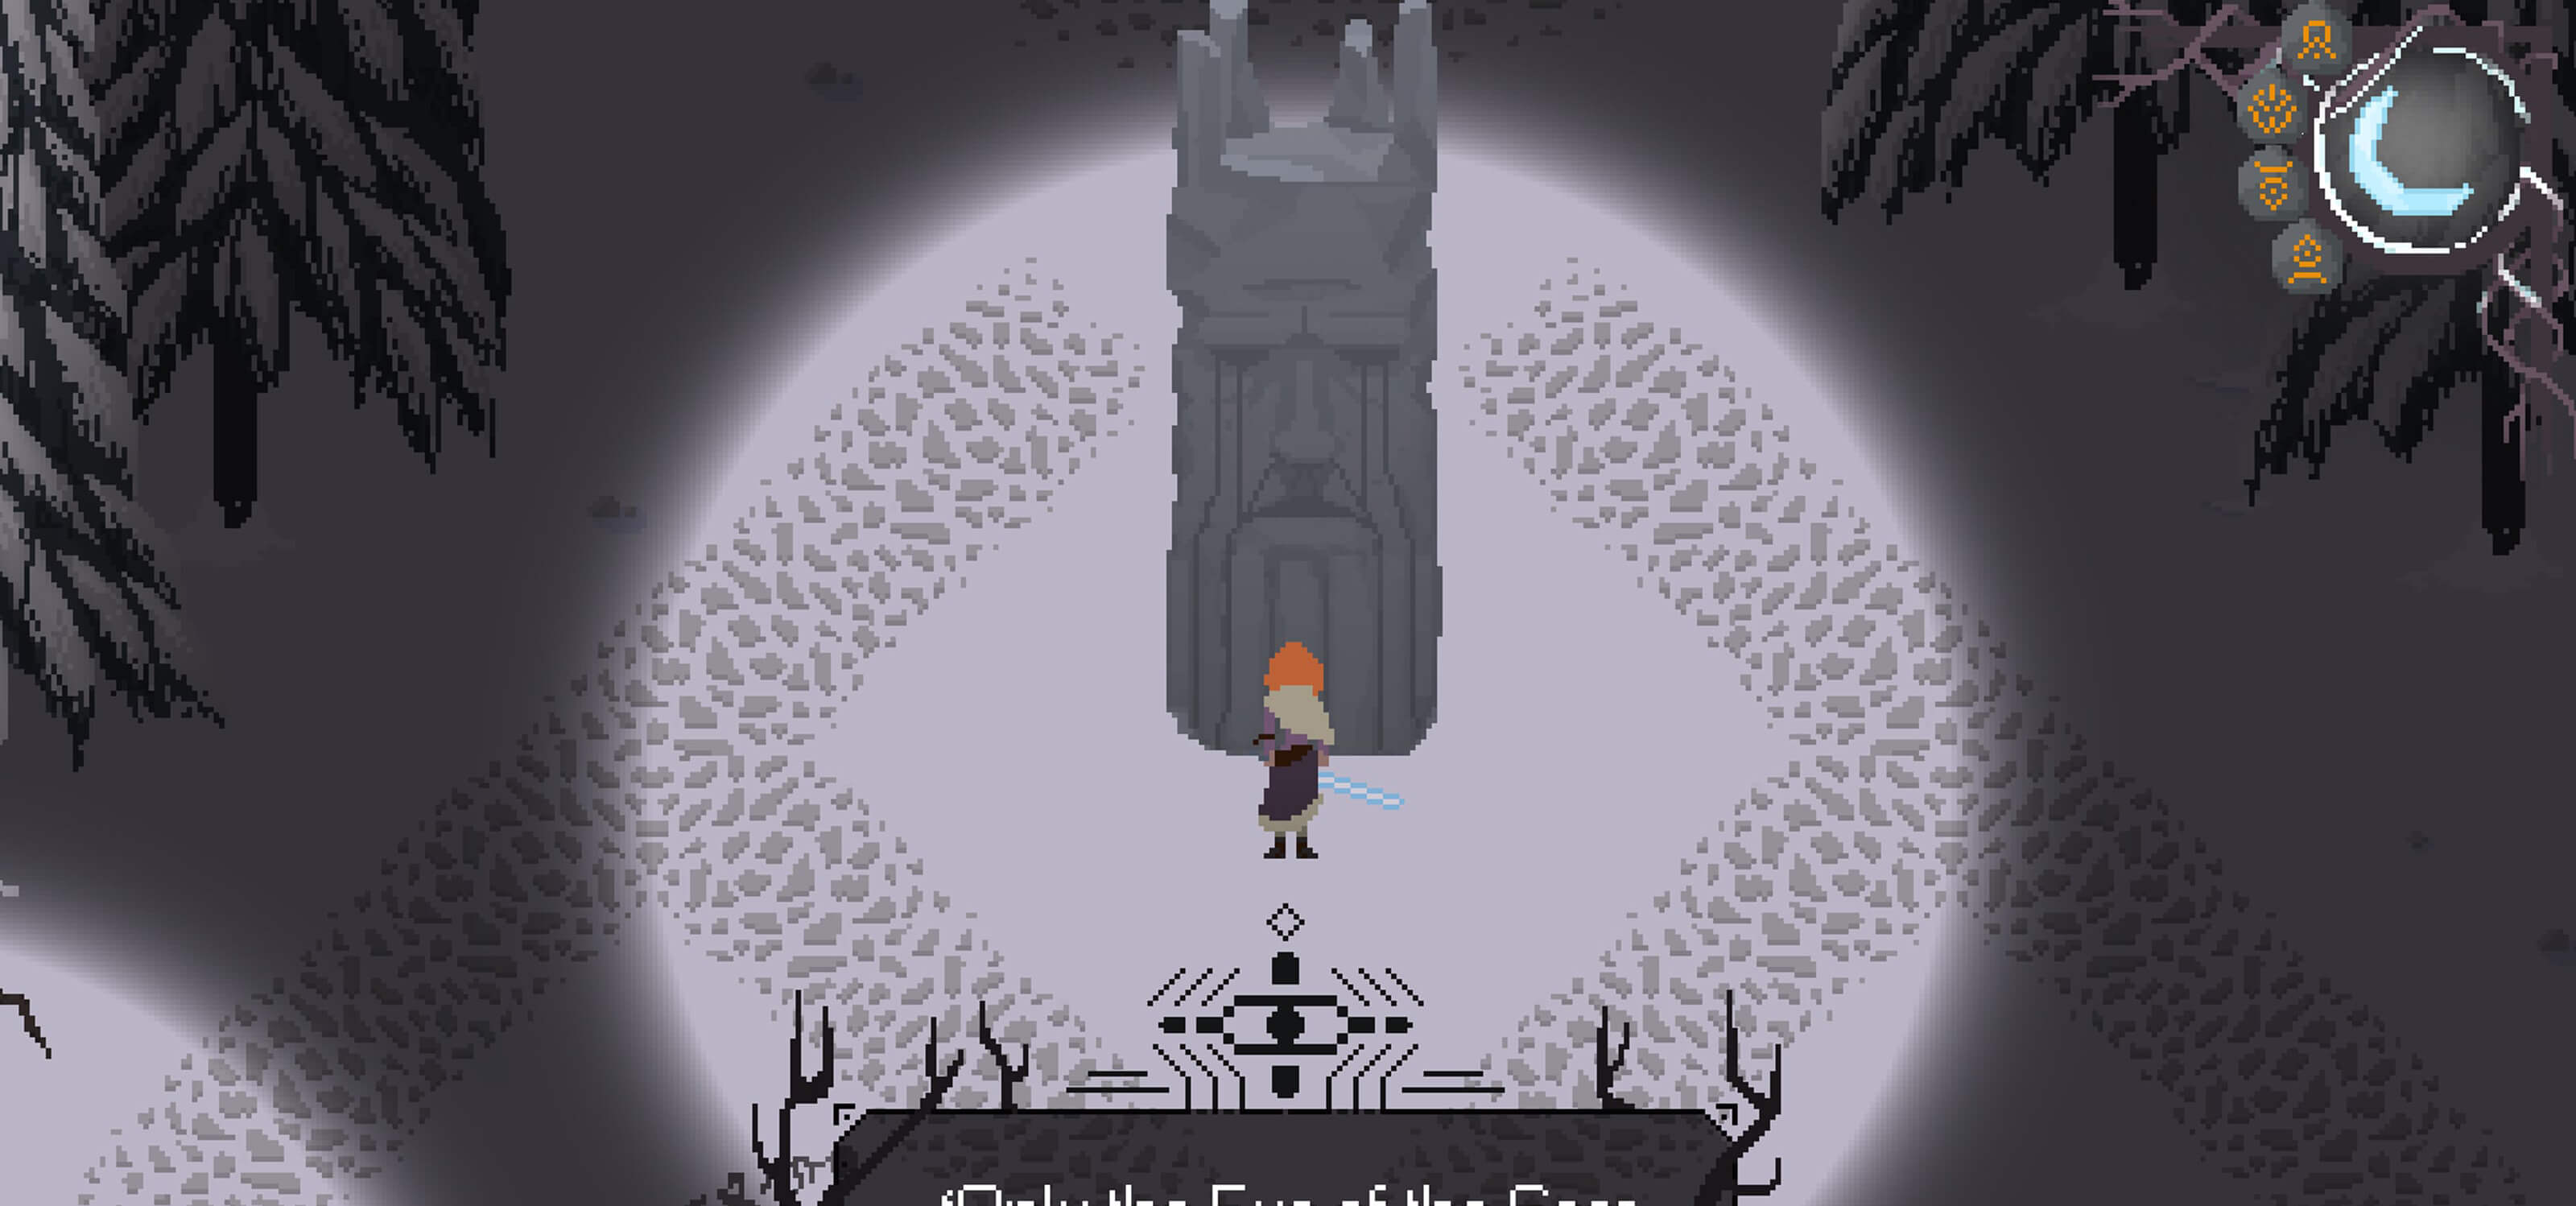 Screenshot from DigiPen student game The Blade in the Bark of the orange-haired heroine meeting the seer statue